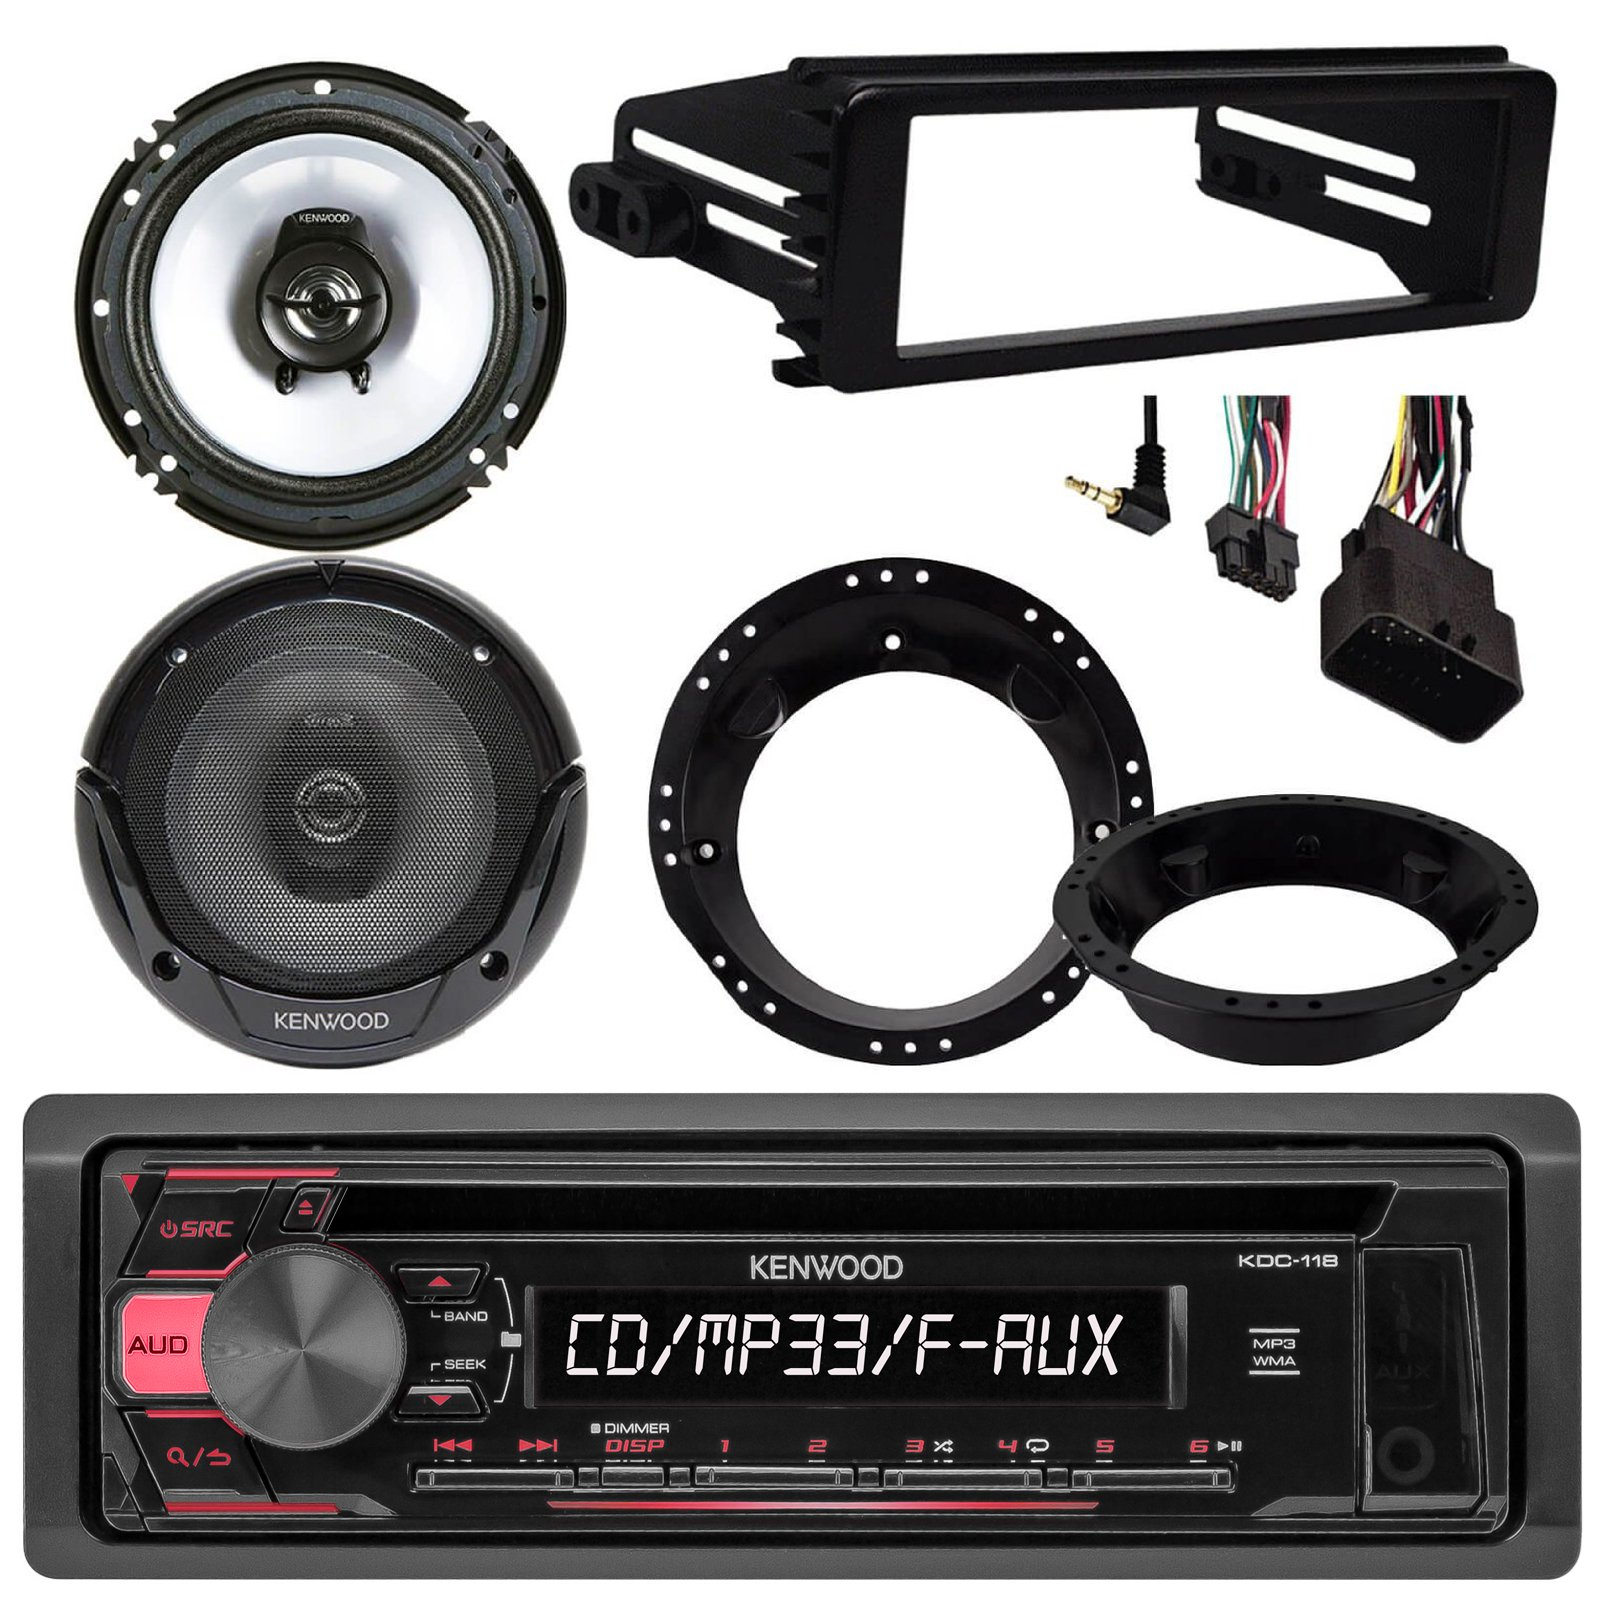 Kenwood KDC118 CD Stereo Audio Receiver - Bundle Combo With 2x Kenwood 6.5'' Inch Black Coaxial Speakers W/ Adapter Brackets, Radio Dash Kit For 1998-2013 Harley Motorcycle Bikes